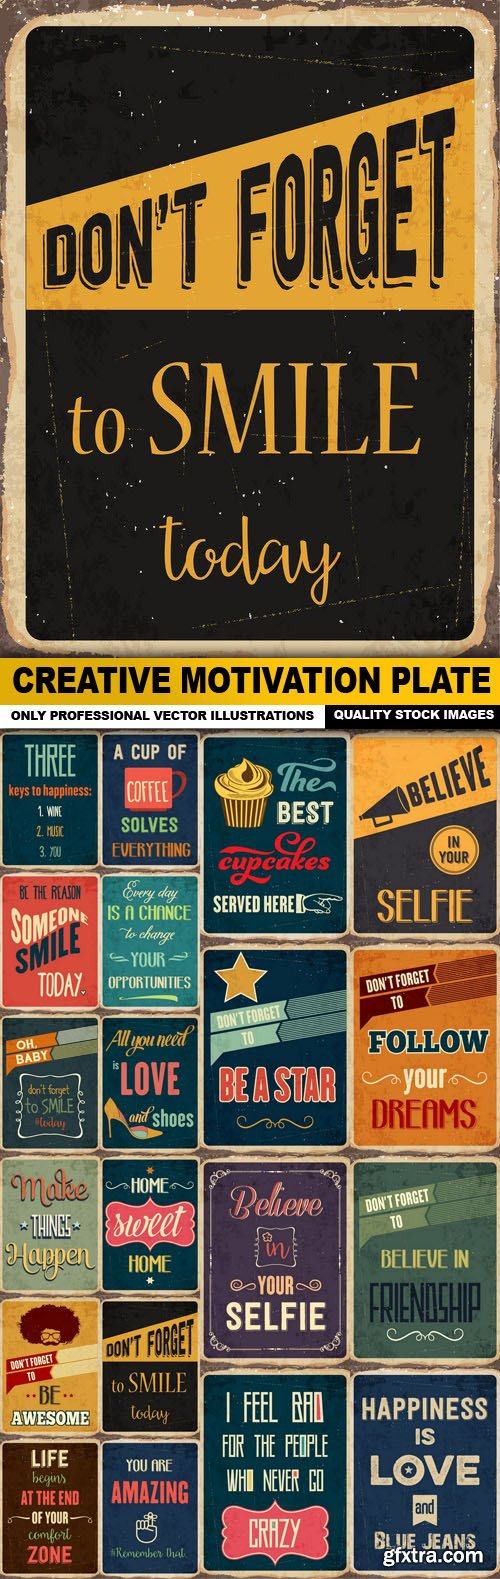 Creative Motivation Plate - 20 Vector